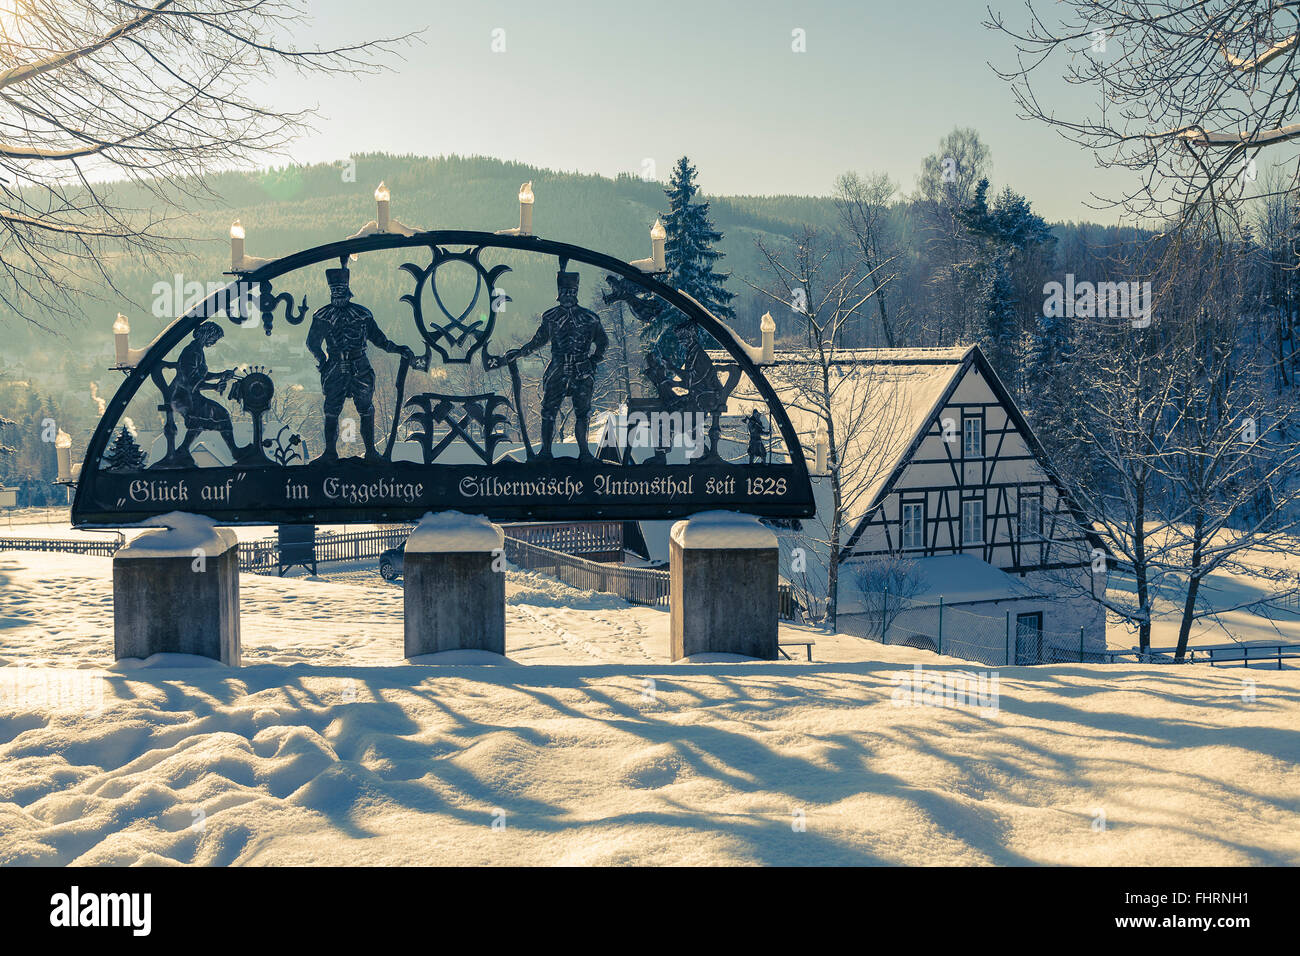 Diaphragm arches at the History of Mining Museum Silberwäsche, Winter, Antonsthal, Breitenbrunn in the Ore - Stock Image